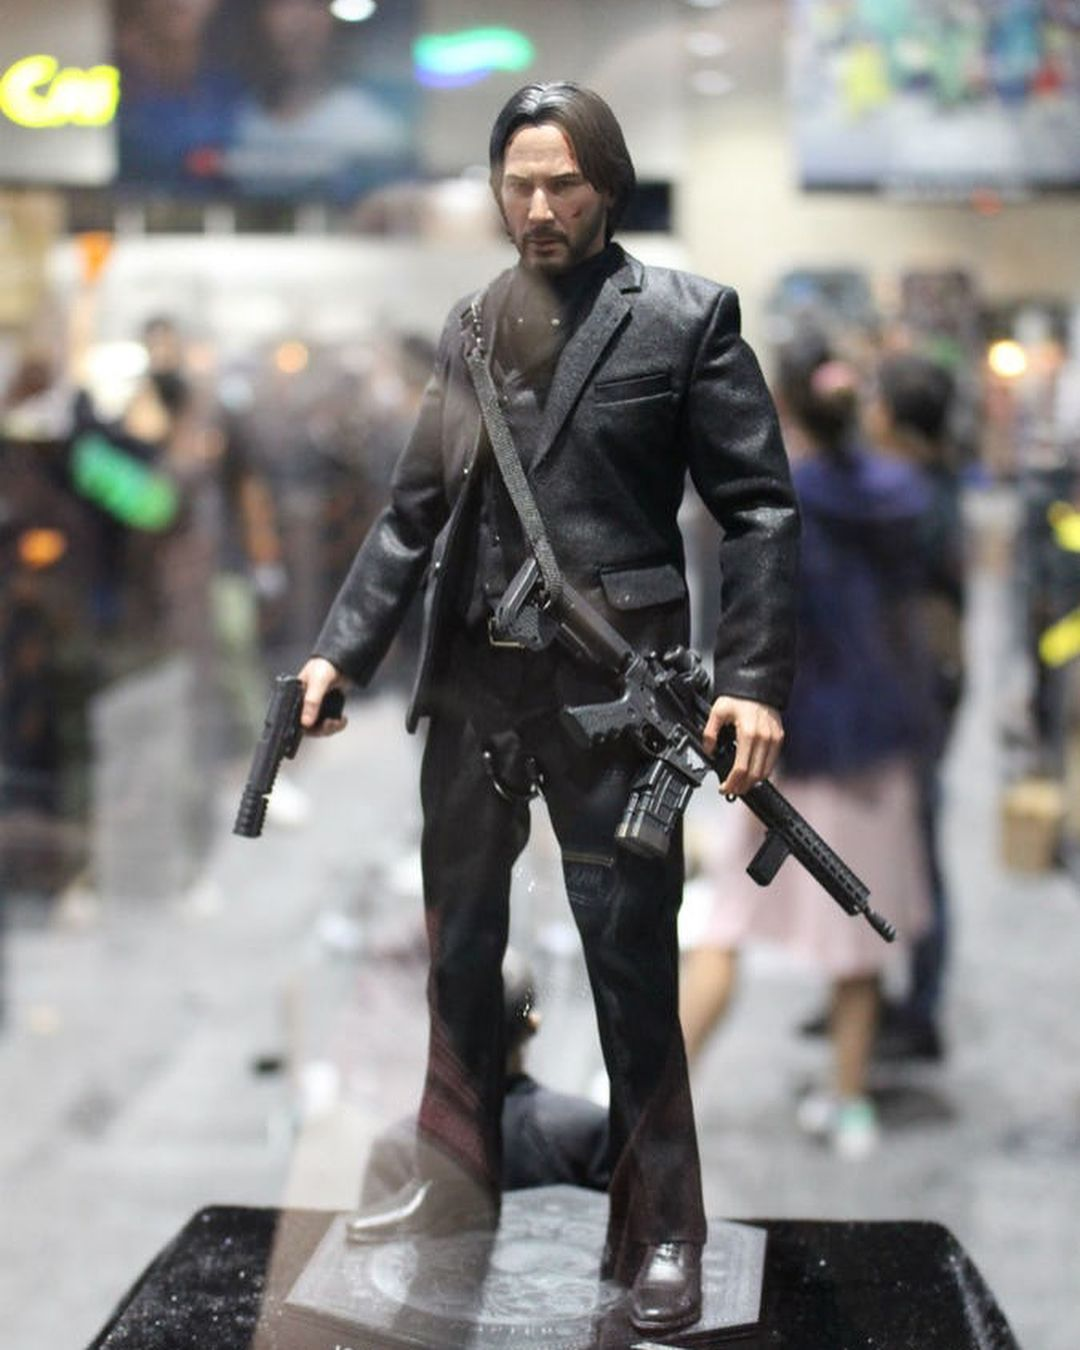 Sideshow Collectibles Debuts John Wick Figure For Sdcc 2018 Keanu Reeves Is Looking Sharp As John Wick Thanks To Sides Keanu Reeves John Wick Movie John Wick